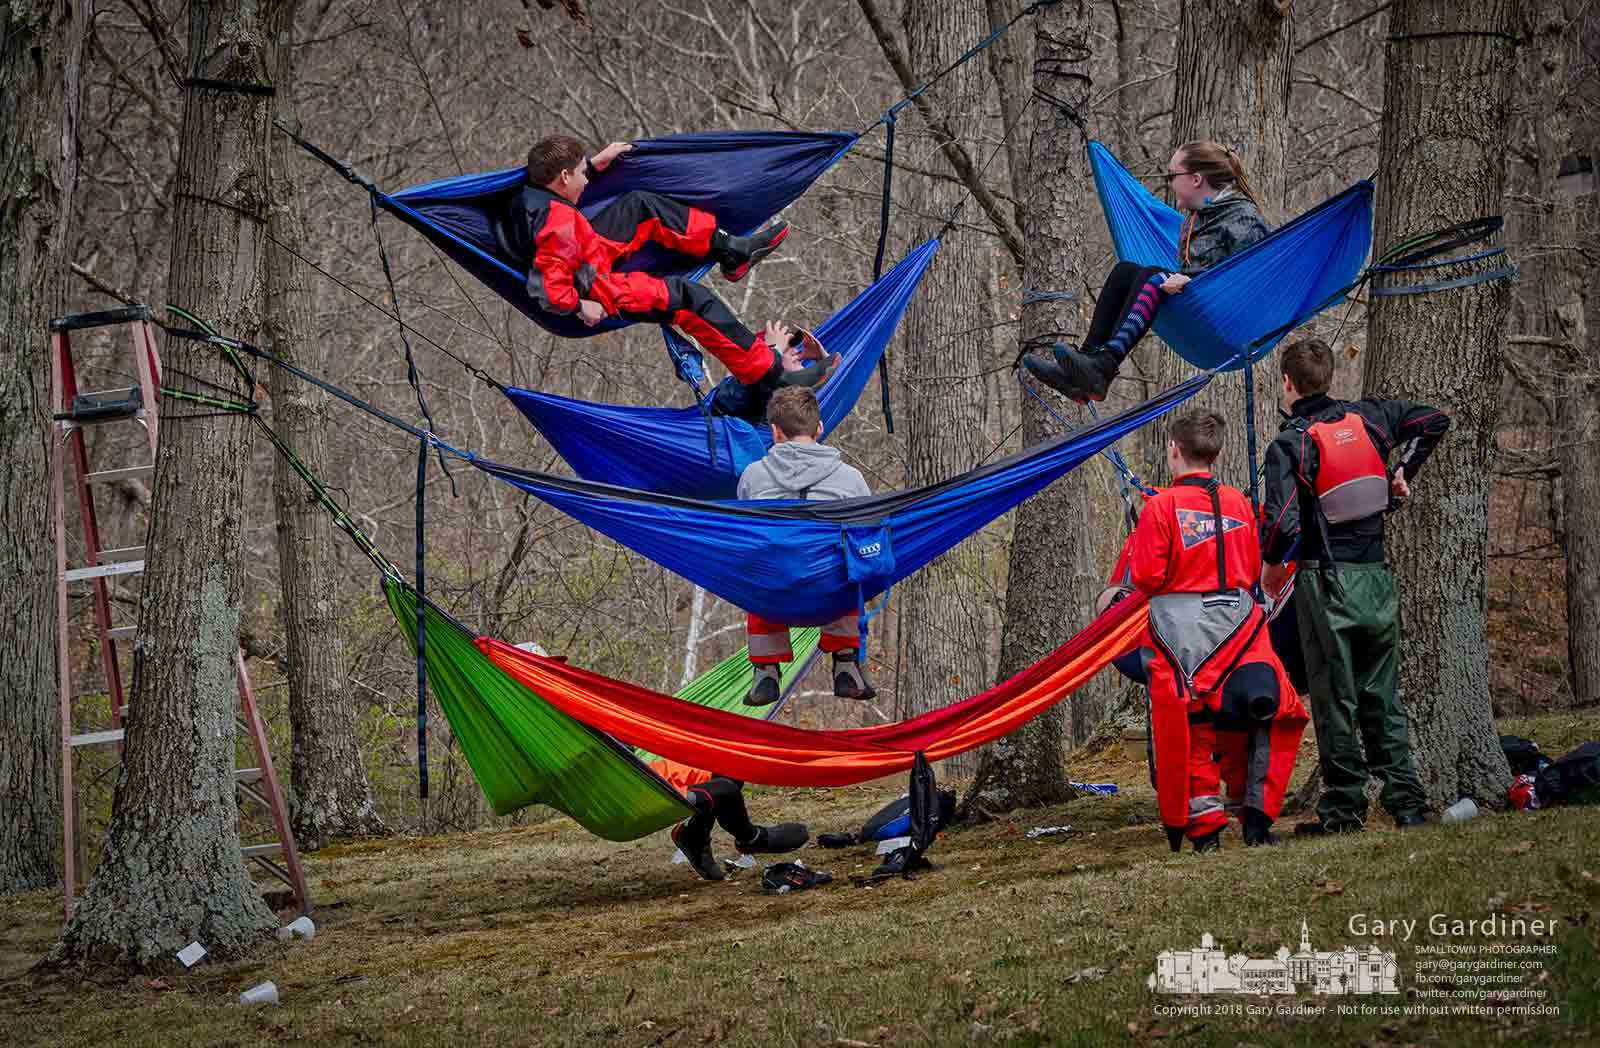 Sailors take to their hammocks between races at the Hoover Sailing Club's Westerville High School Regatta. My Final Photo for April 21, 2018.